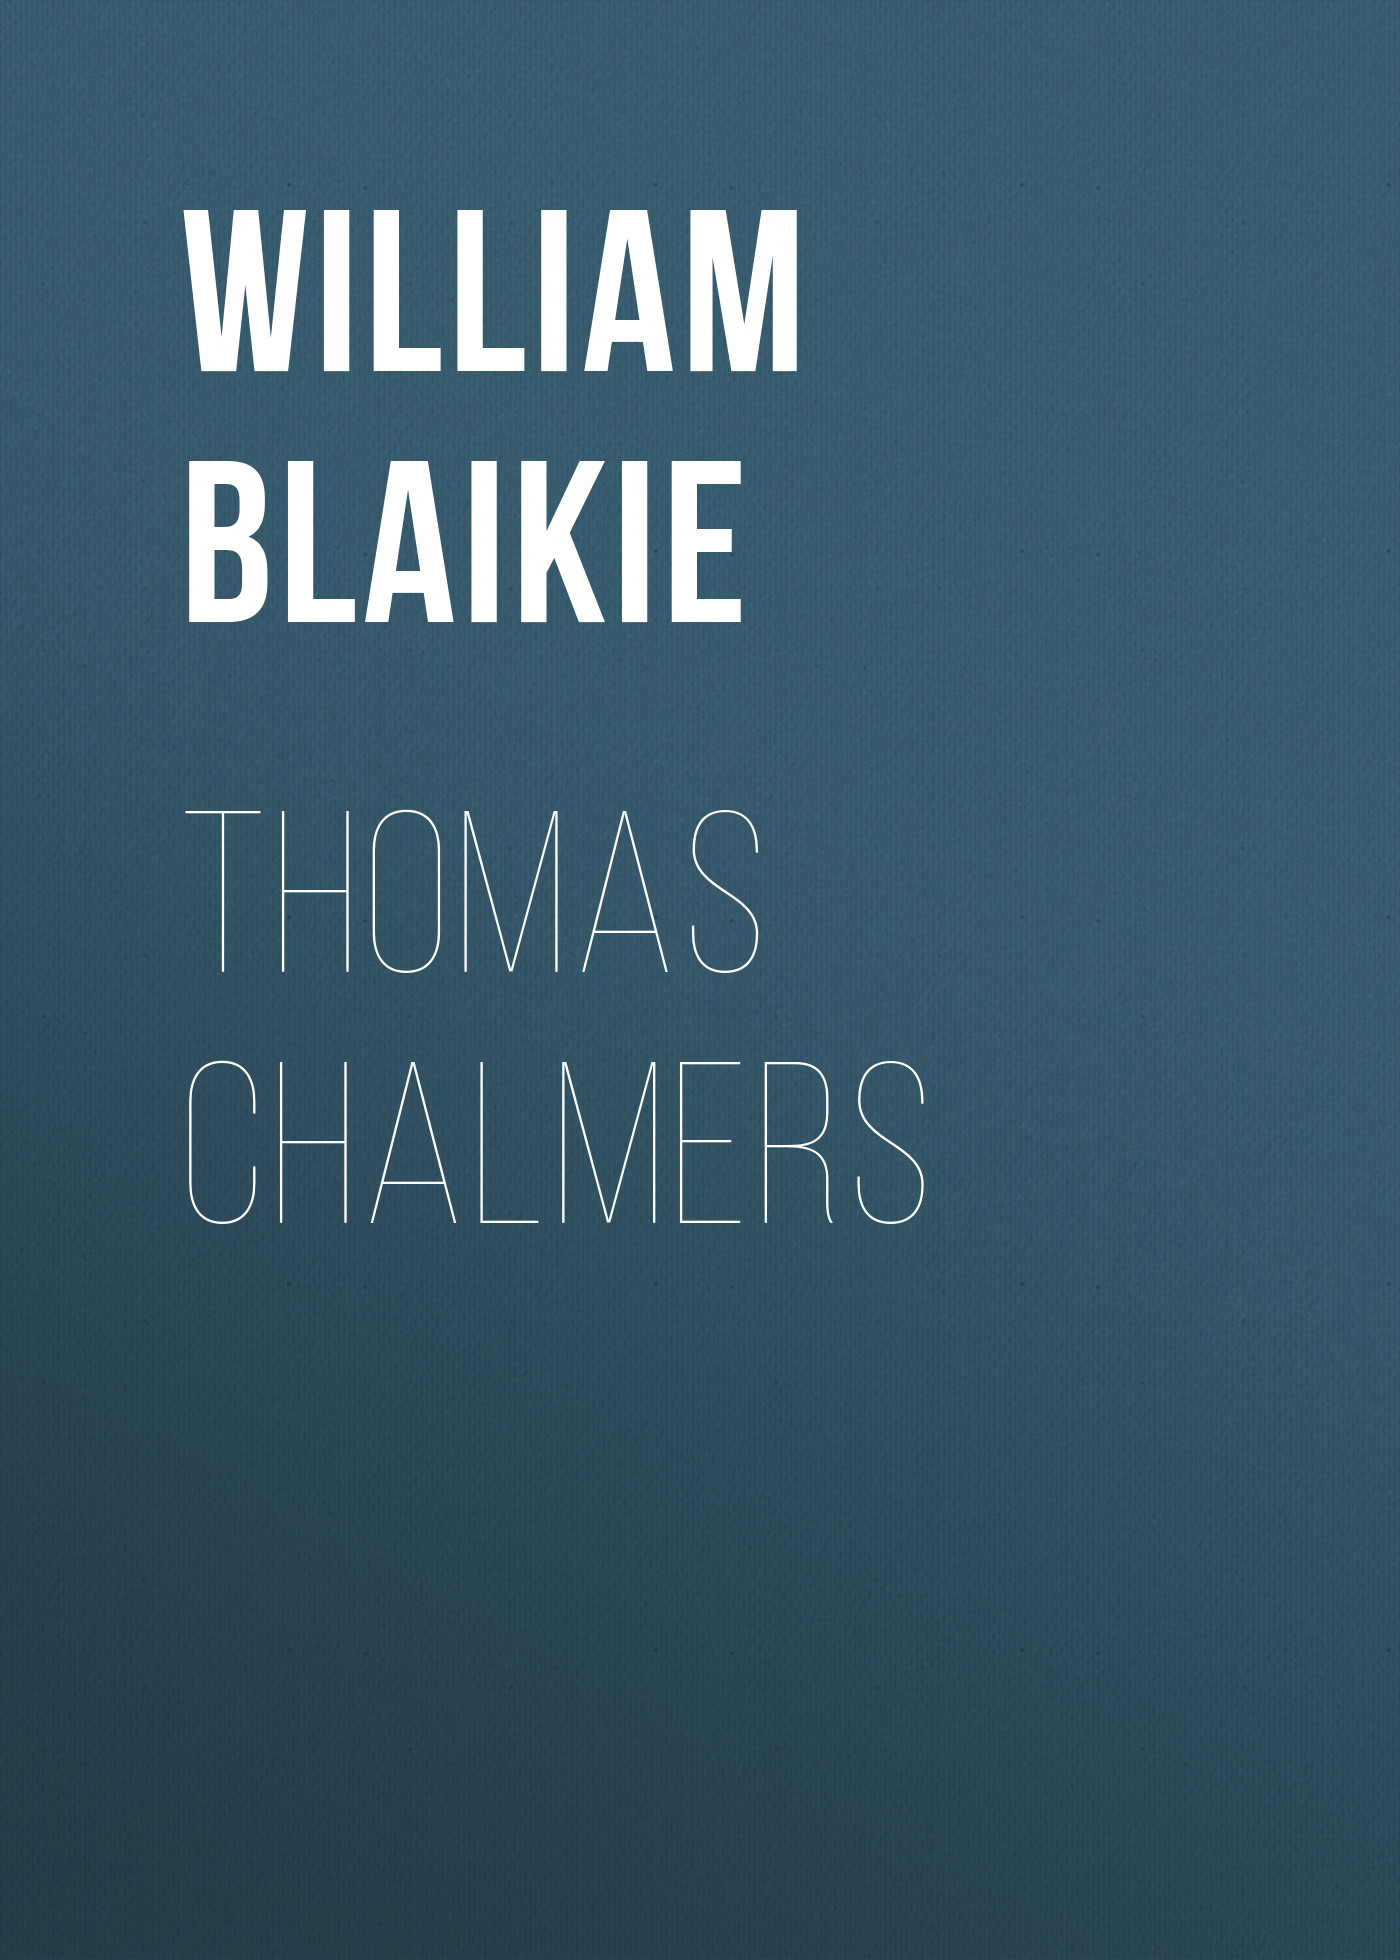 William Garden Blaikie Thomas Chalmers william garden blaikie the book of joshua v 6